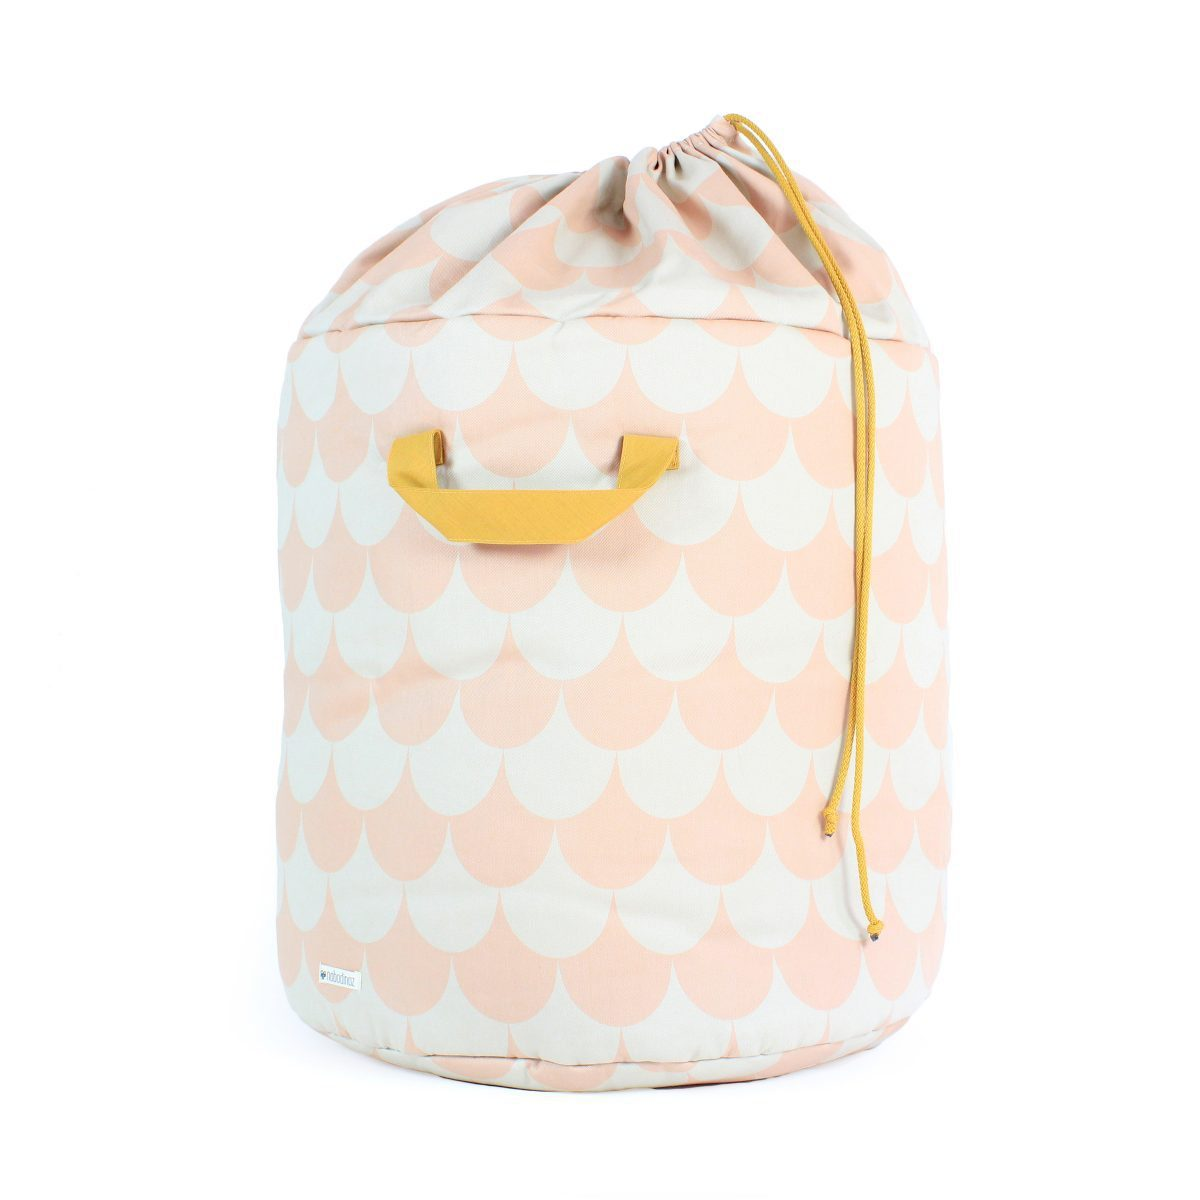 Nobodinoz Baobab toy bag scales in pink